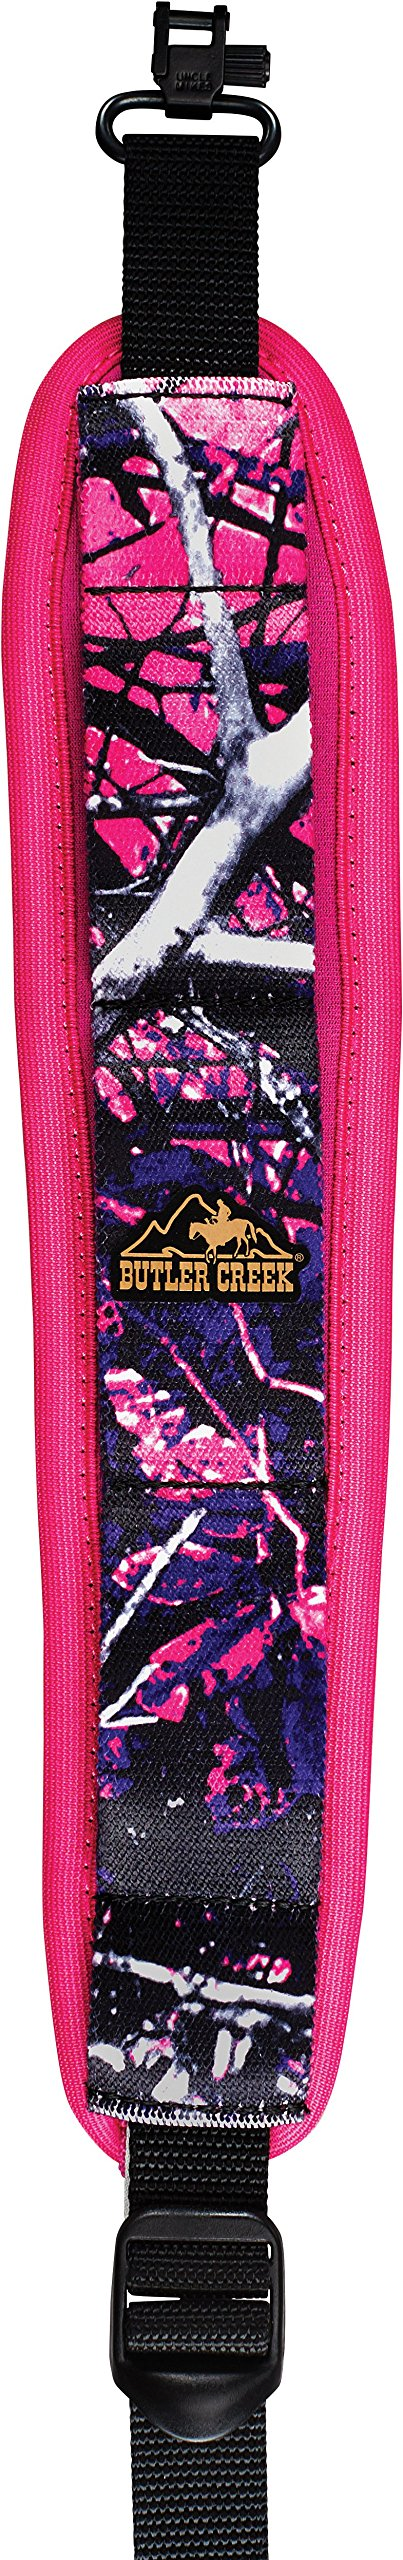 Butler Creek Comfort Stretch Rifle Sling with Swivels, Muddy Girl by Butler Creek